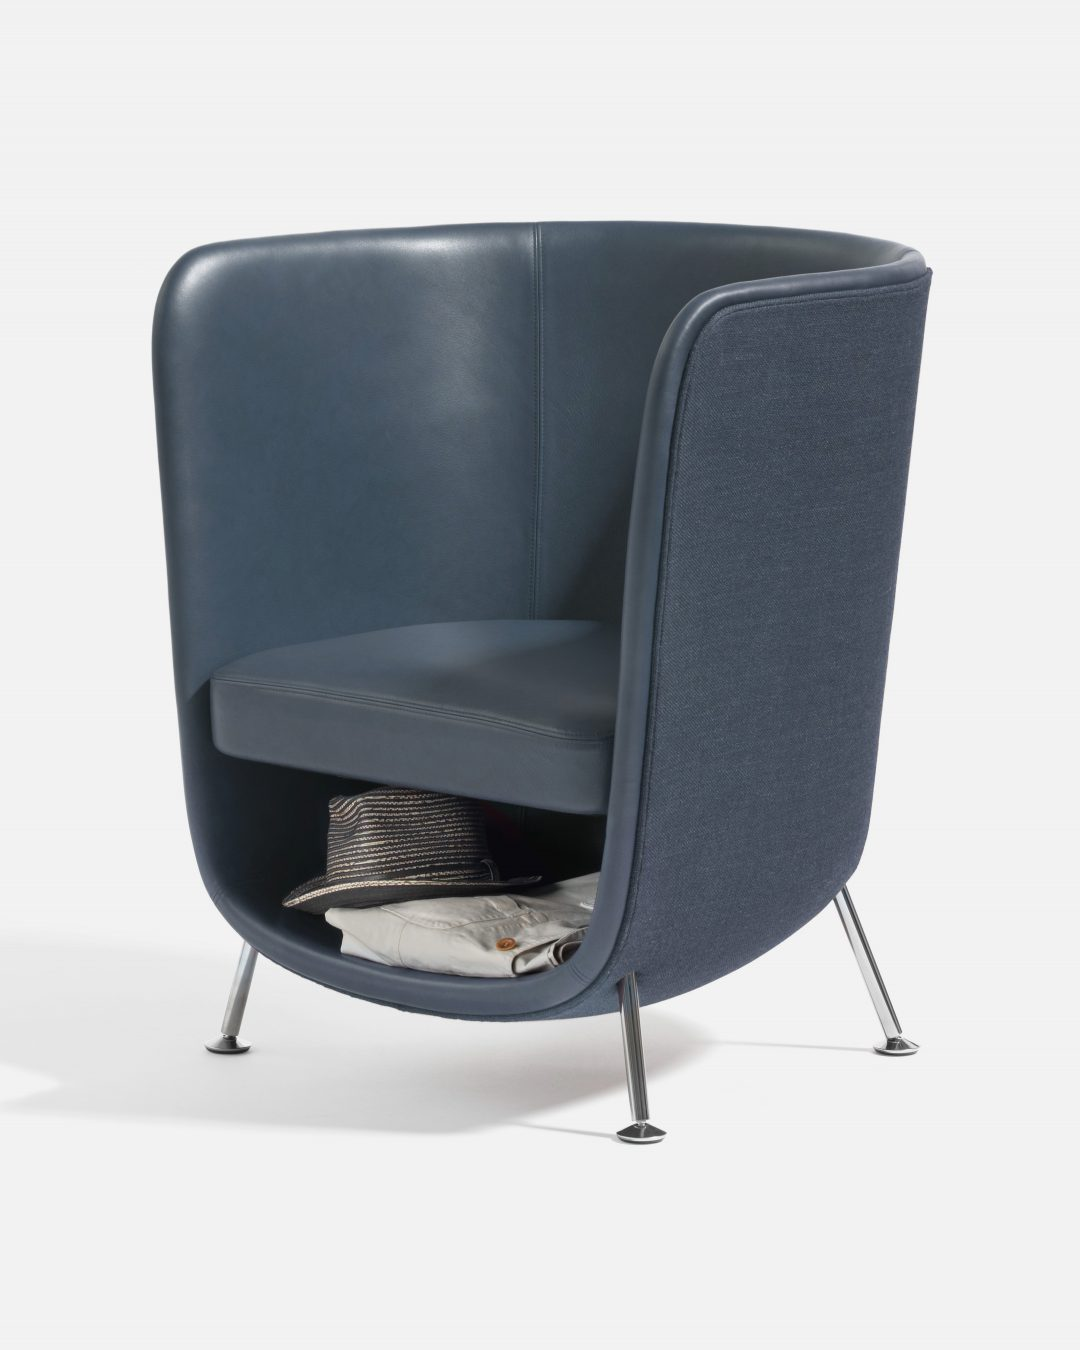 design-chair in grey for cats and humans with space under the seat for the cat